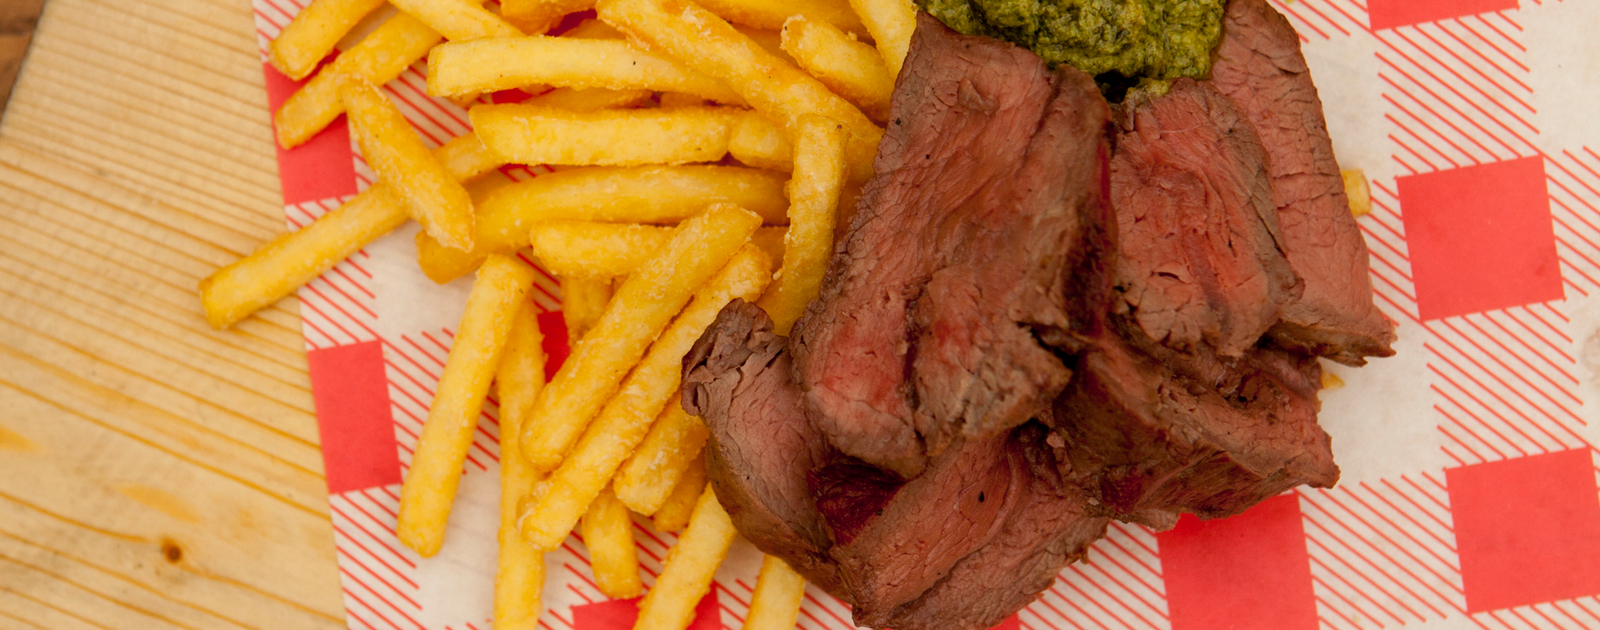 Steak and chips at The BBQ Club at Southbank Centre